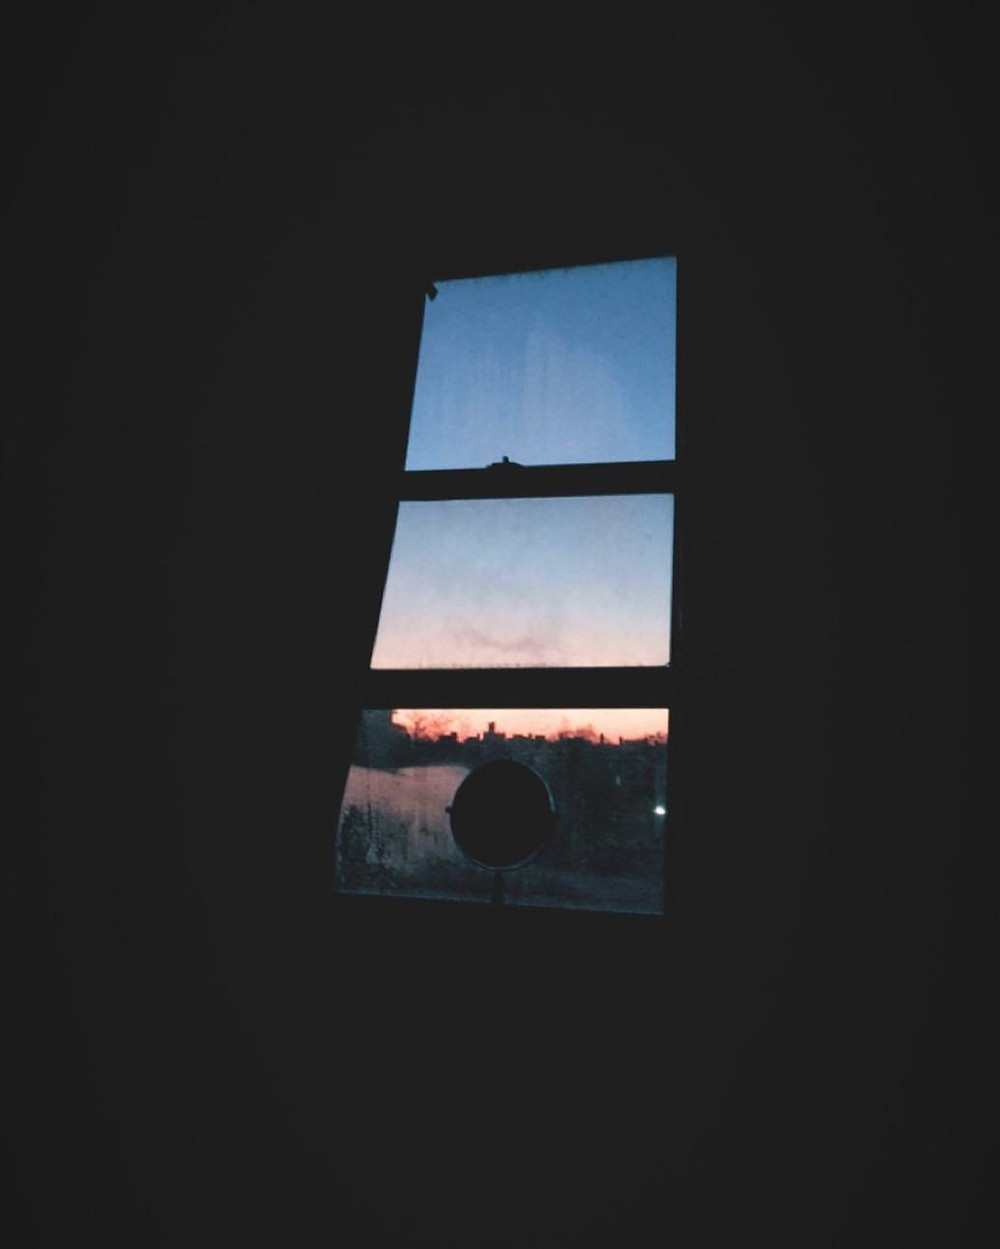 A picture of a light coming through a window. Everything is Black except for the Window. outside the window there's a bit of silhouette of cityscape and a gradient of setting sun, orange fading into blue. Sitting at the bottom of the window sill is a small vanity mirror.